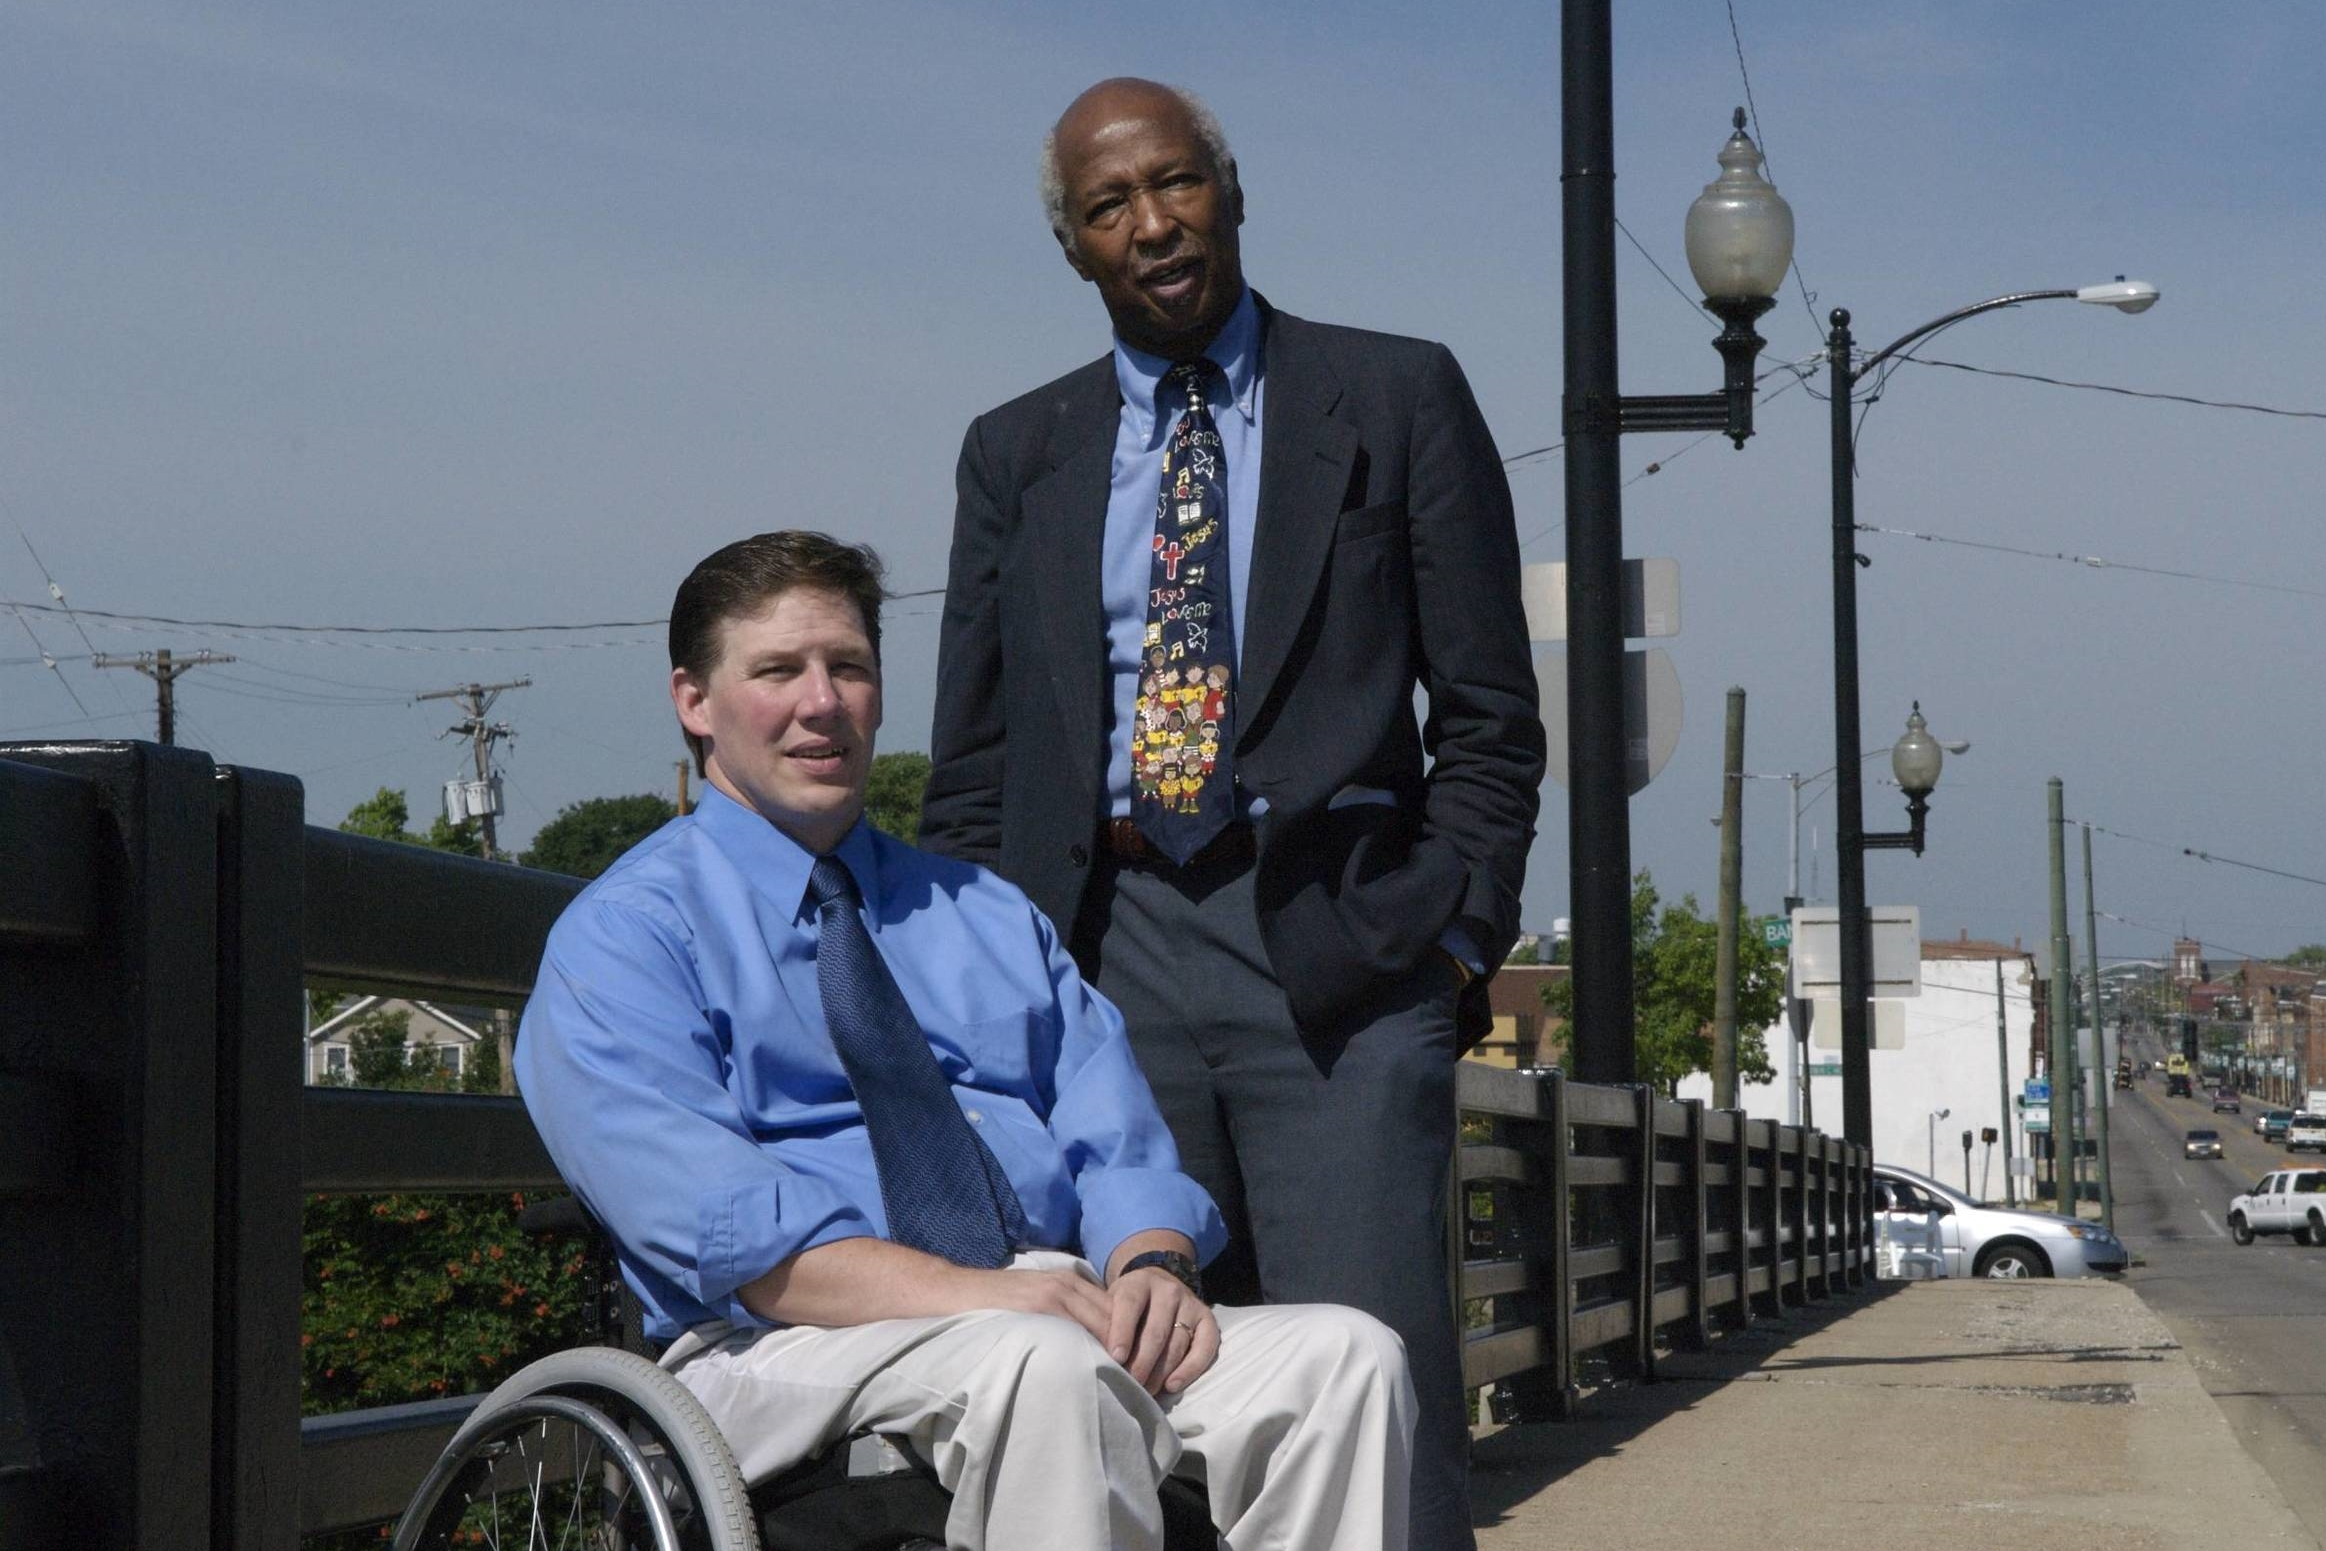 Pastor Darryl Fairchild & Rev. Robert E. Jones - Photographed on the Third Street Bridge in Dayton, OH, also known as the Peace Bridge for its connection of the historically divided east and west sides of the city.